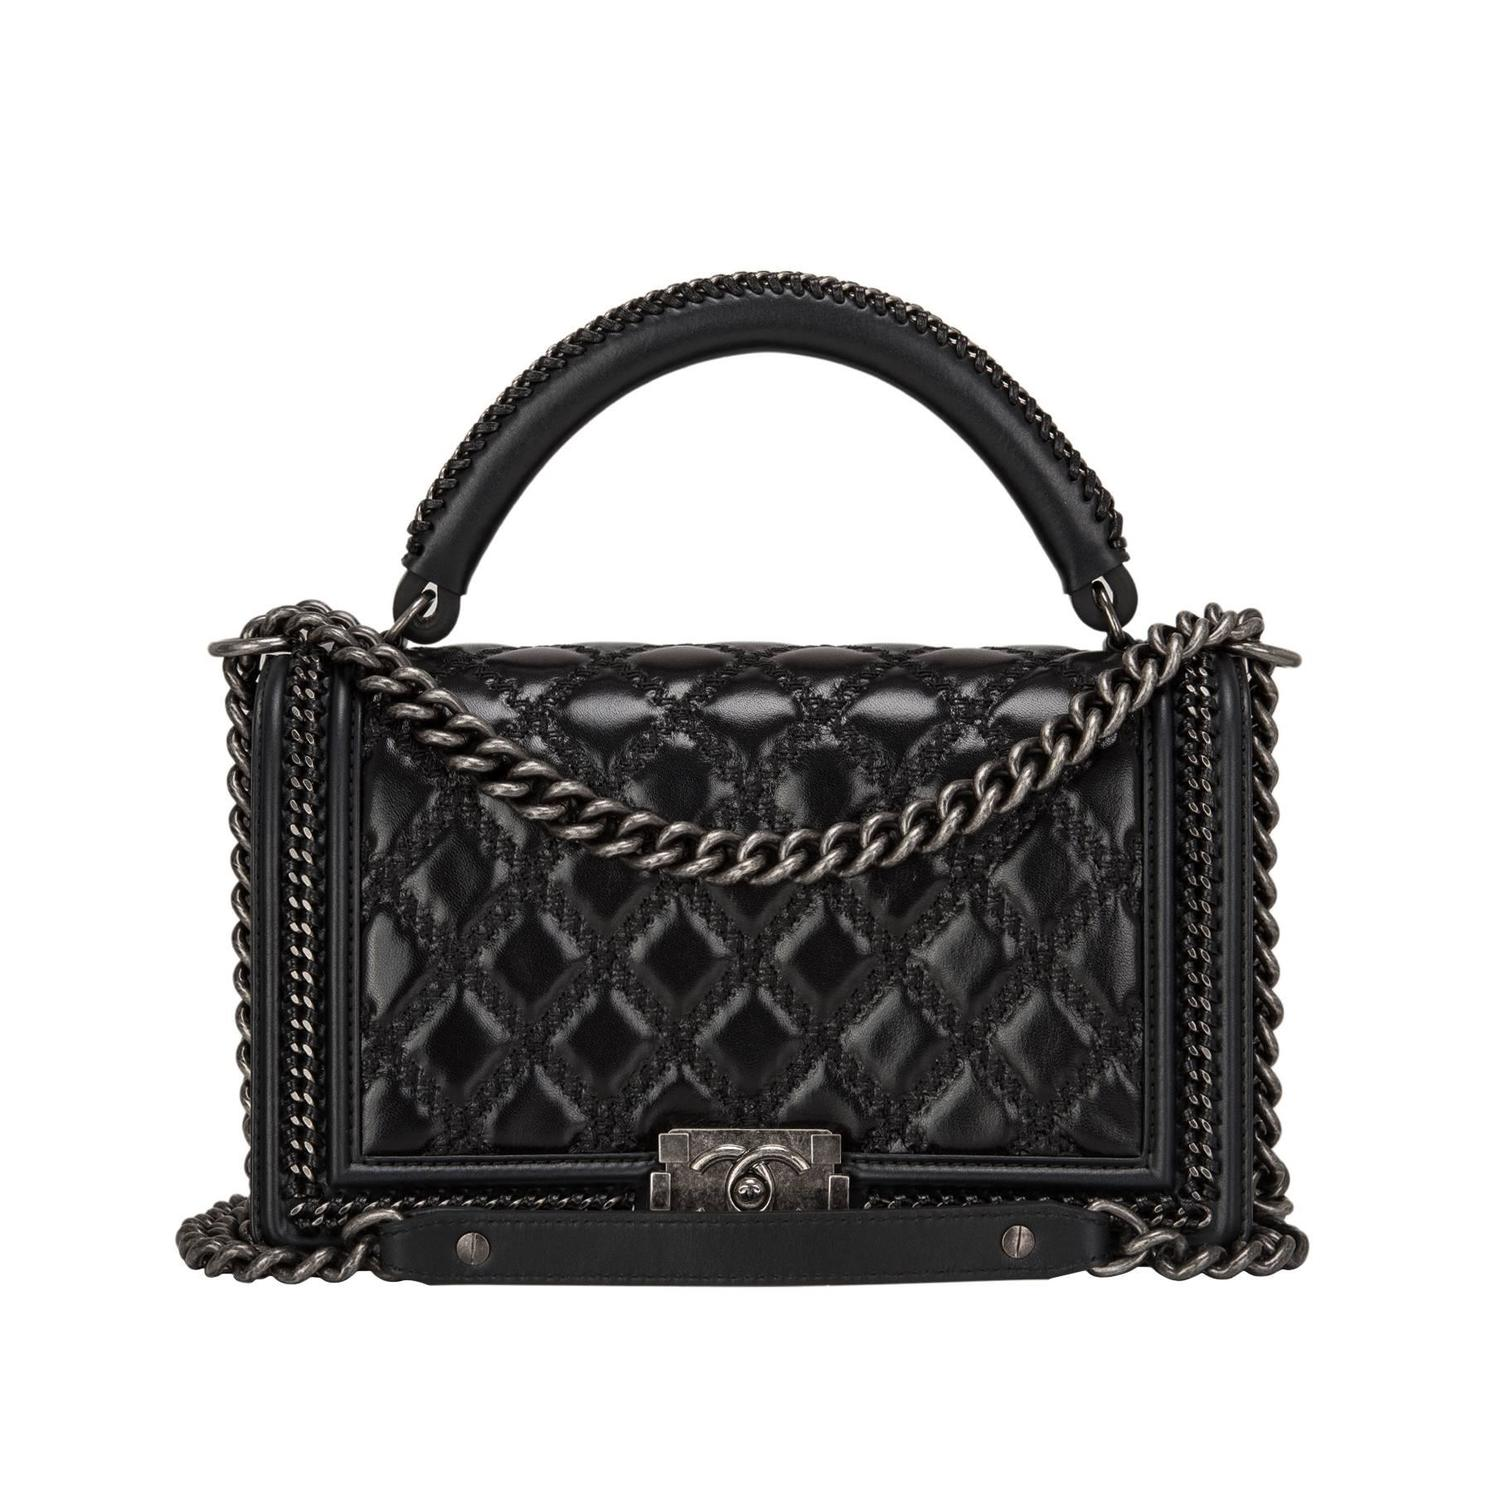 a77ded41c892 Chanel Boy Bag Is The Chain Shiny | Stanford Center for Opportunity ...